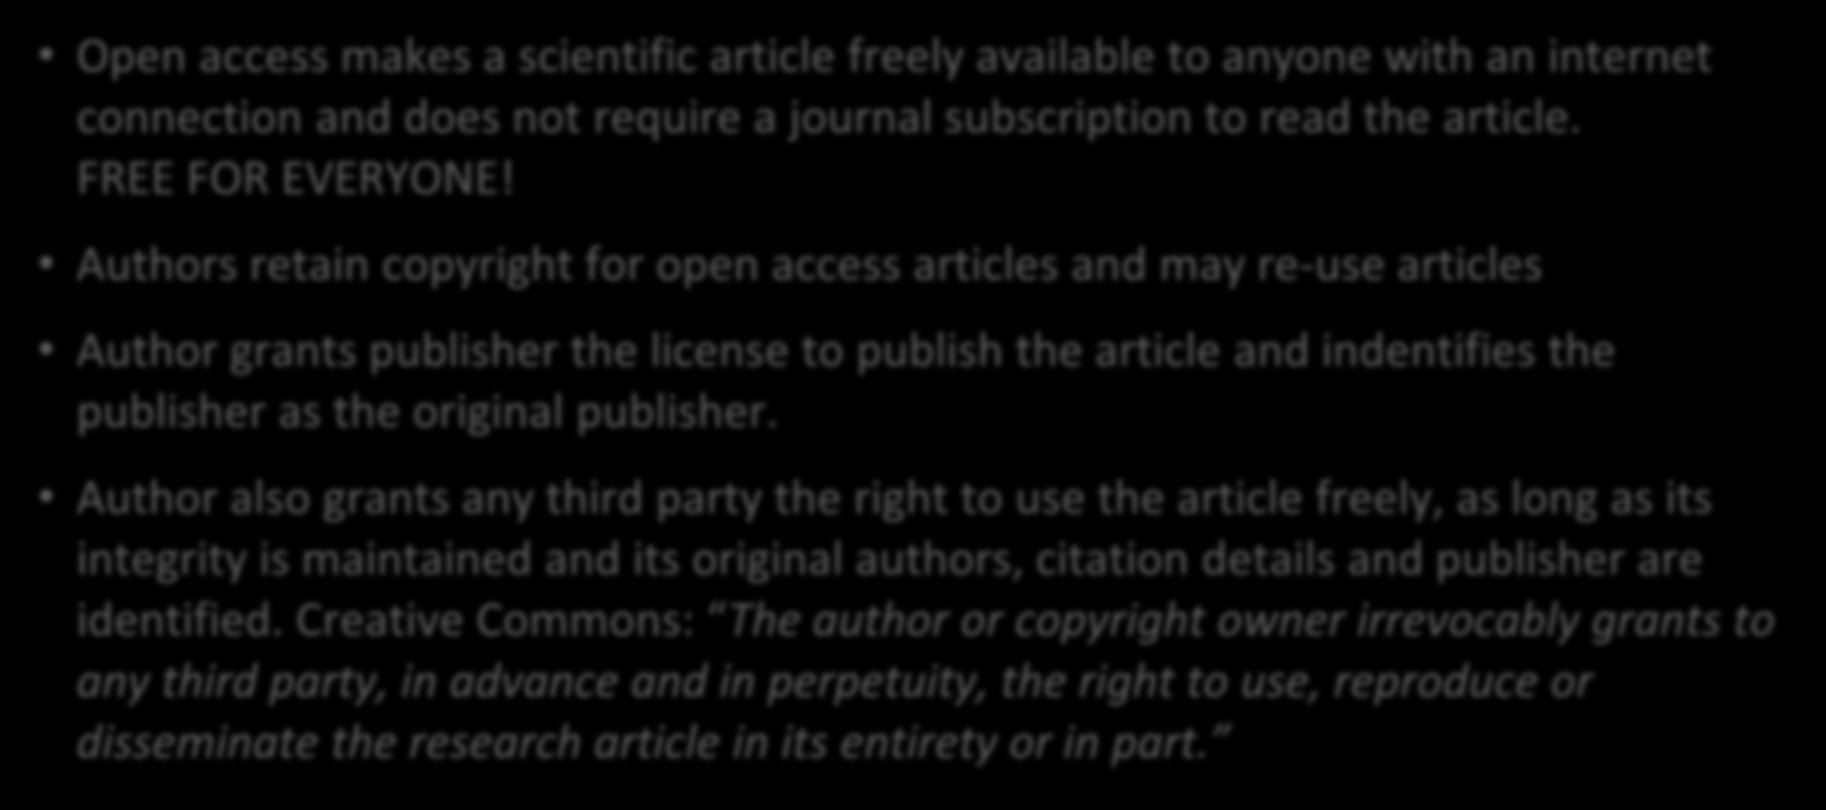 What is Open Access? Open access makes a scientific article freely available to anyone with an internet connection and does not require a journal subscription to read the article. FREE FOR EVERYONE!